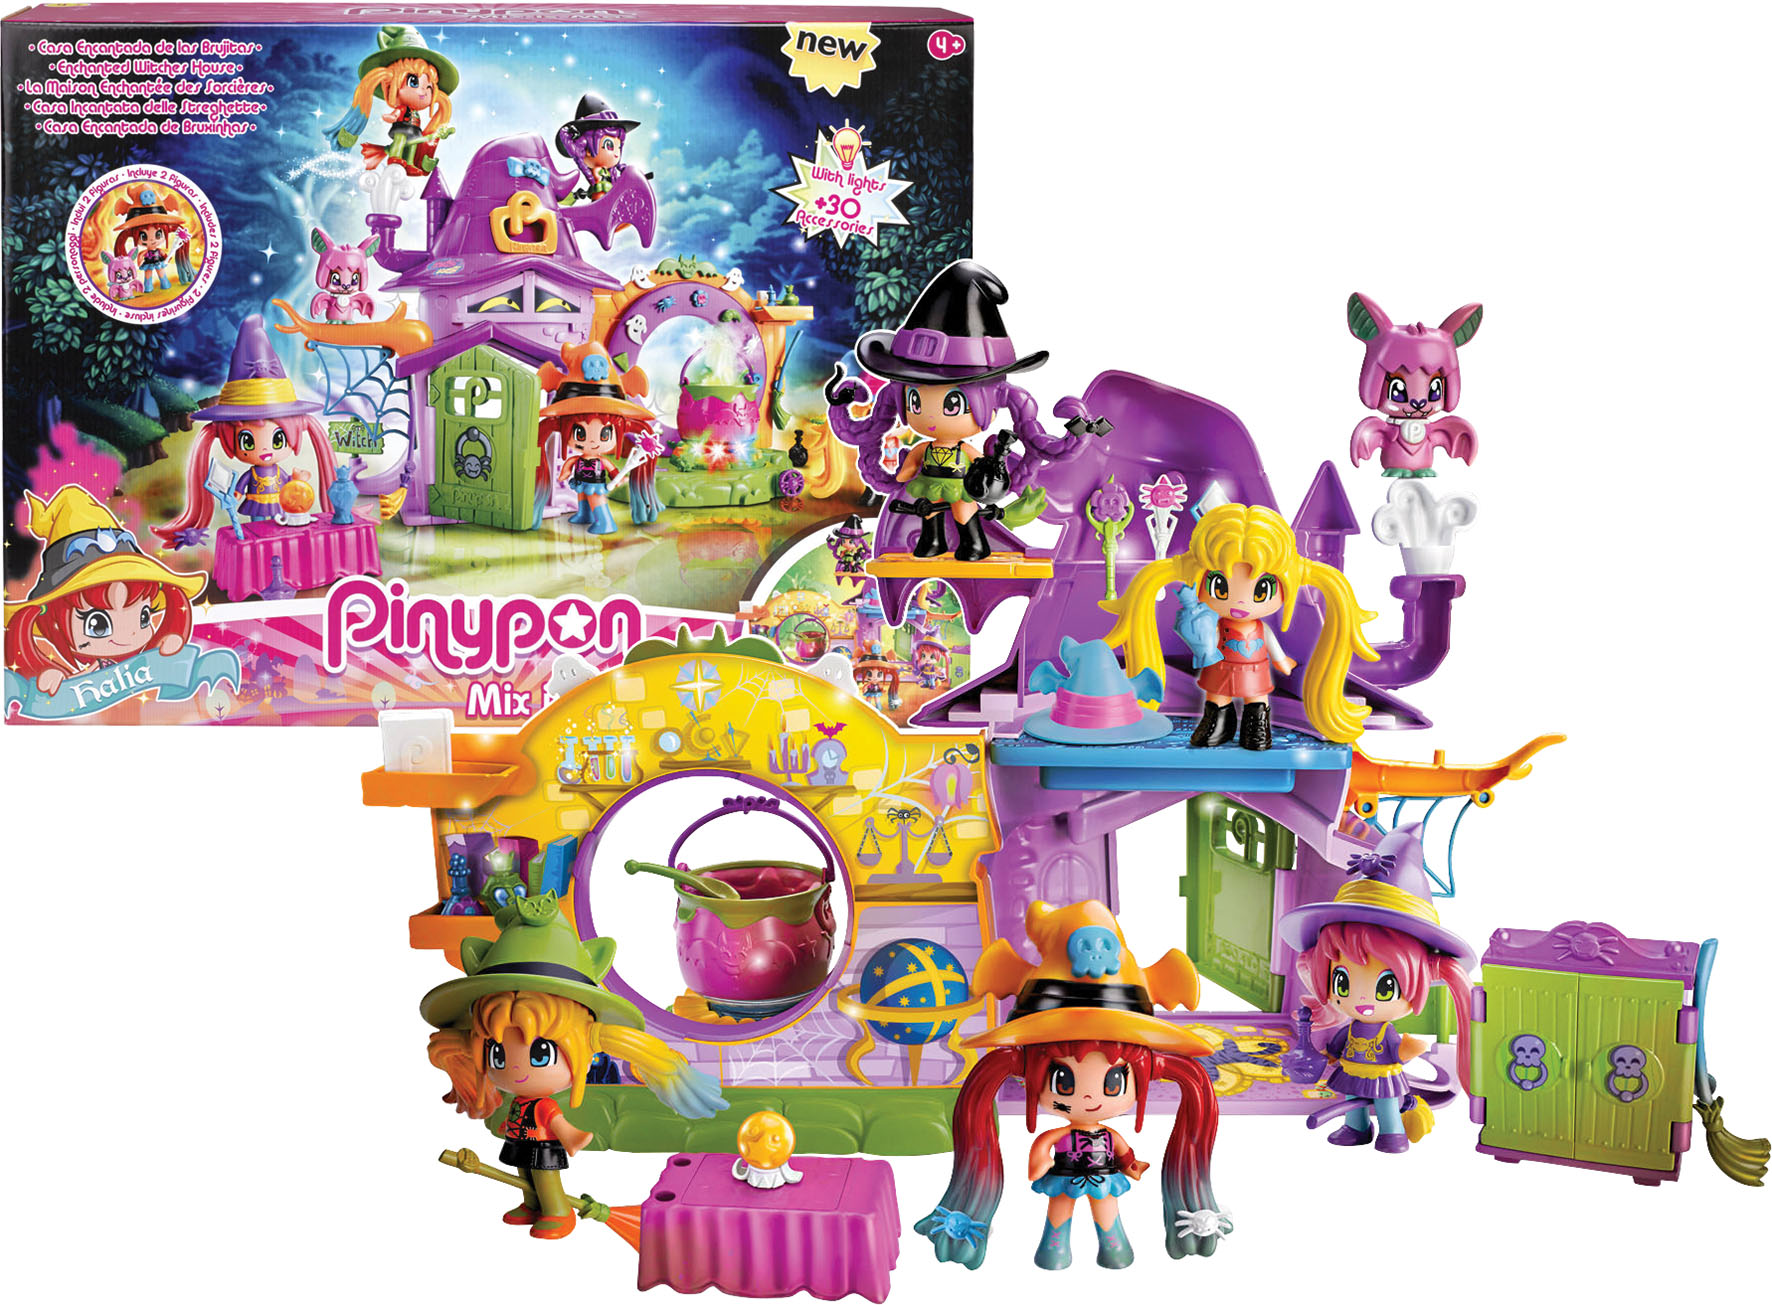 PINYPON CASA STREGHETTE TV